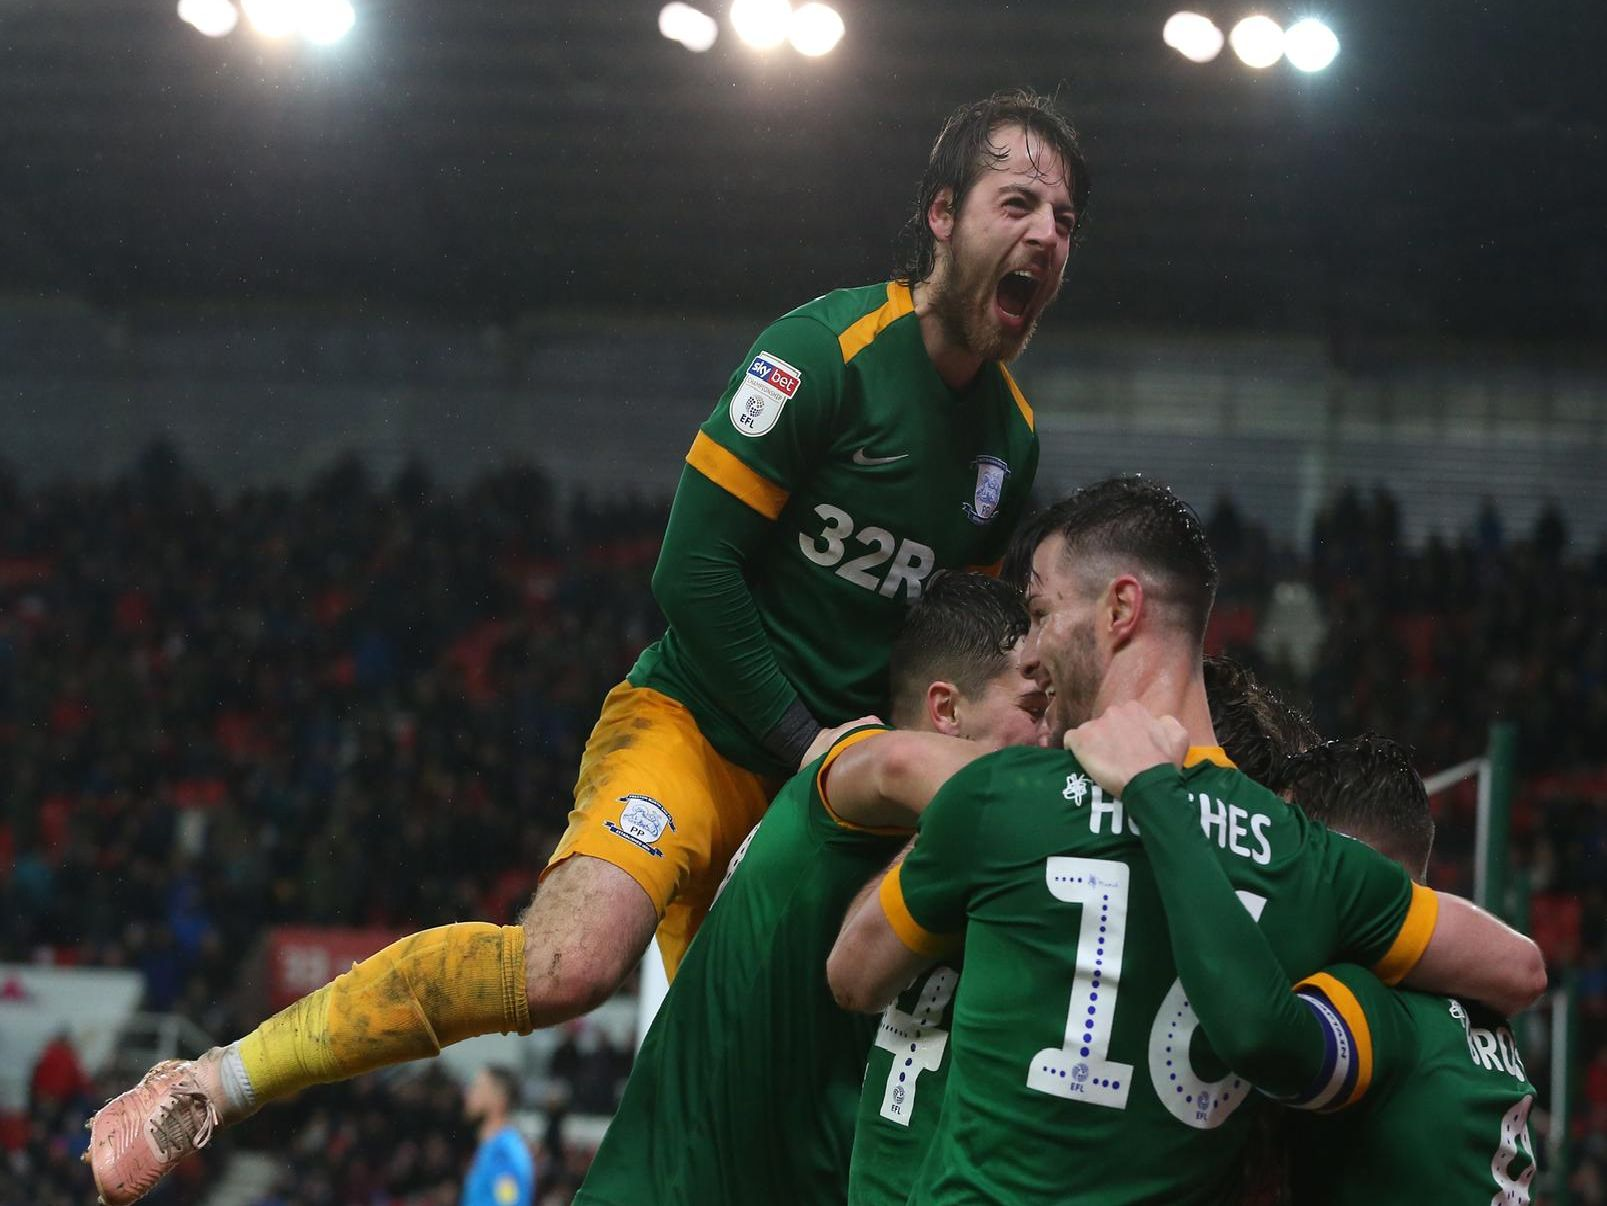 Preston North End are eight games unbeaten in the Championship